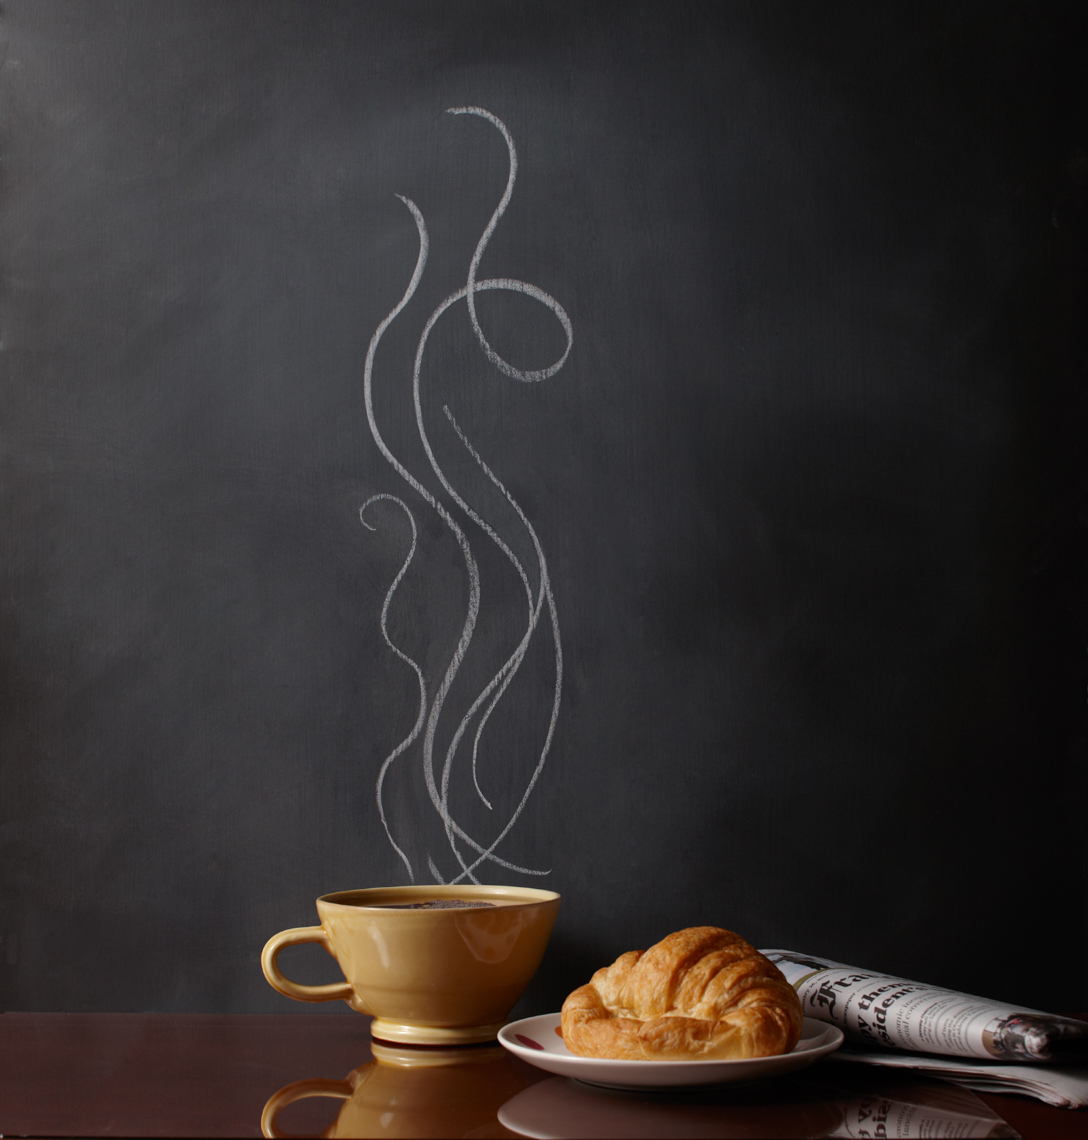 Yellow Coffee cup on wooden table with chalk-drawn steam and plate with crescent